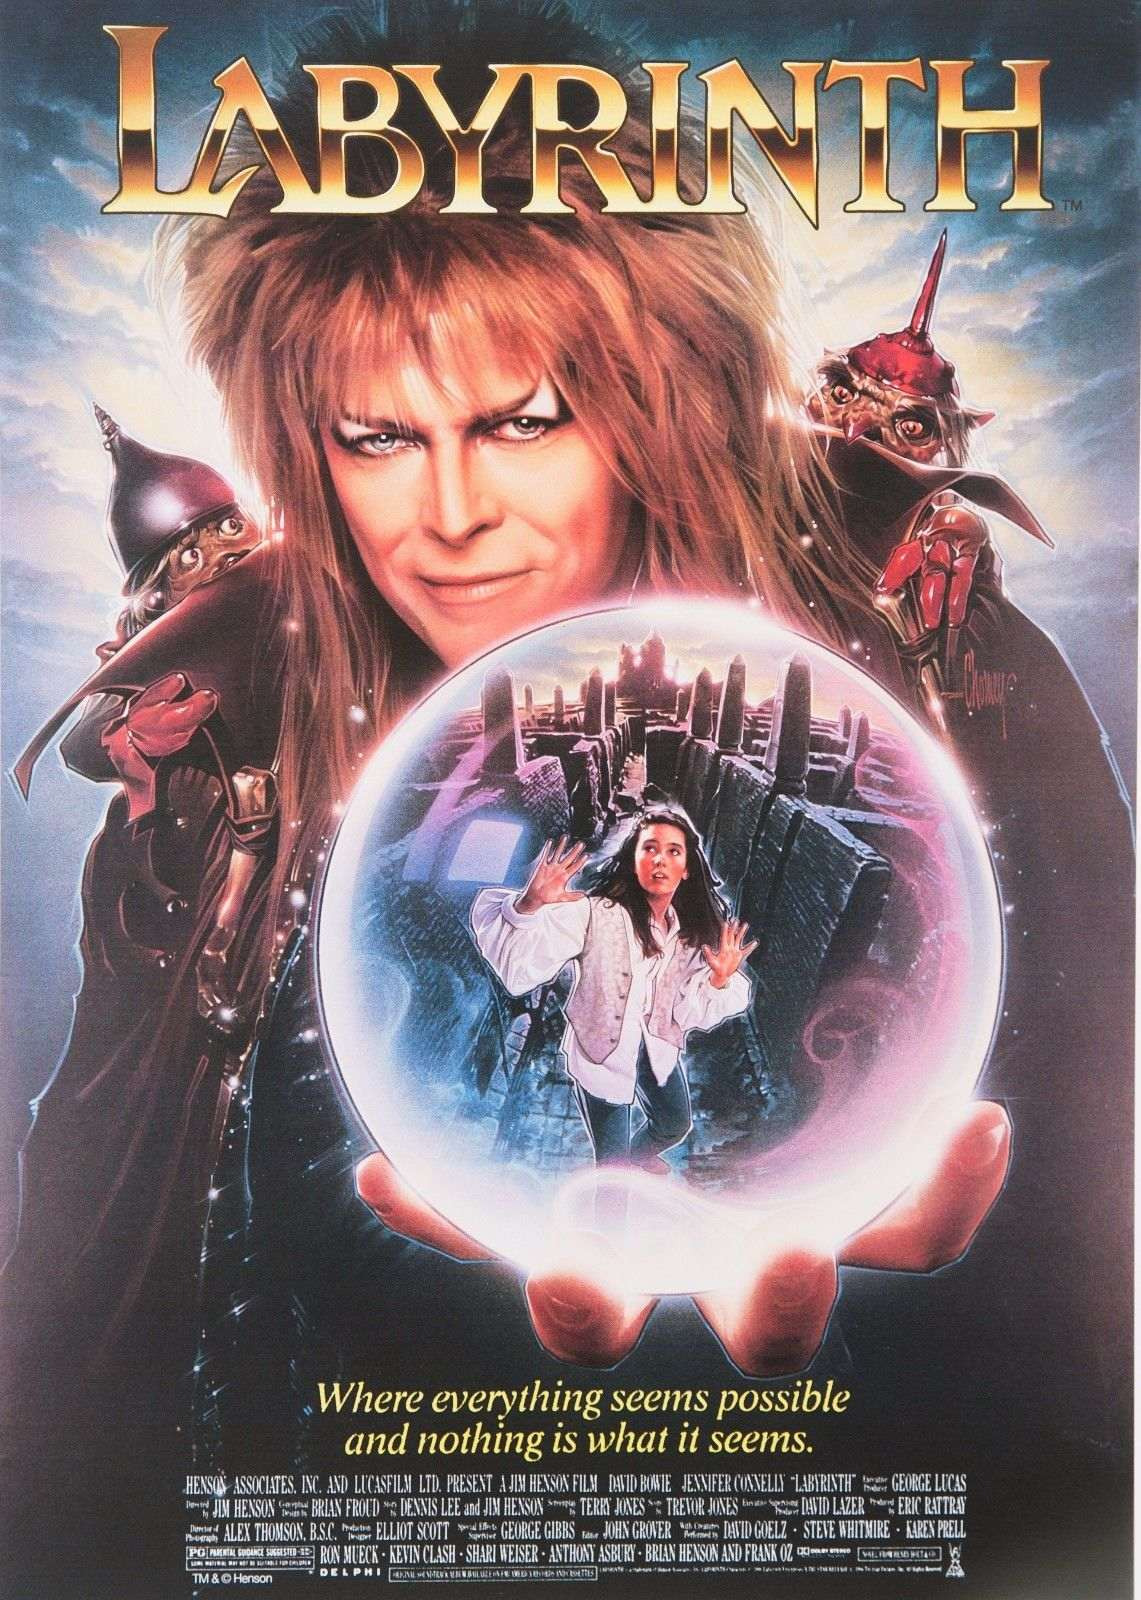 The labyrinth 2 movie